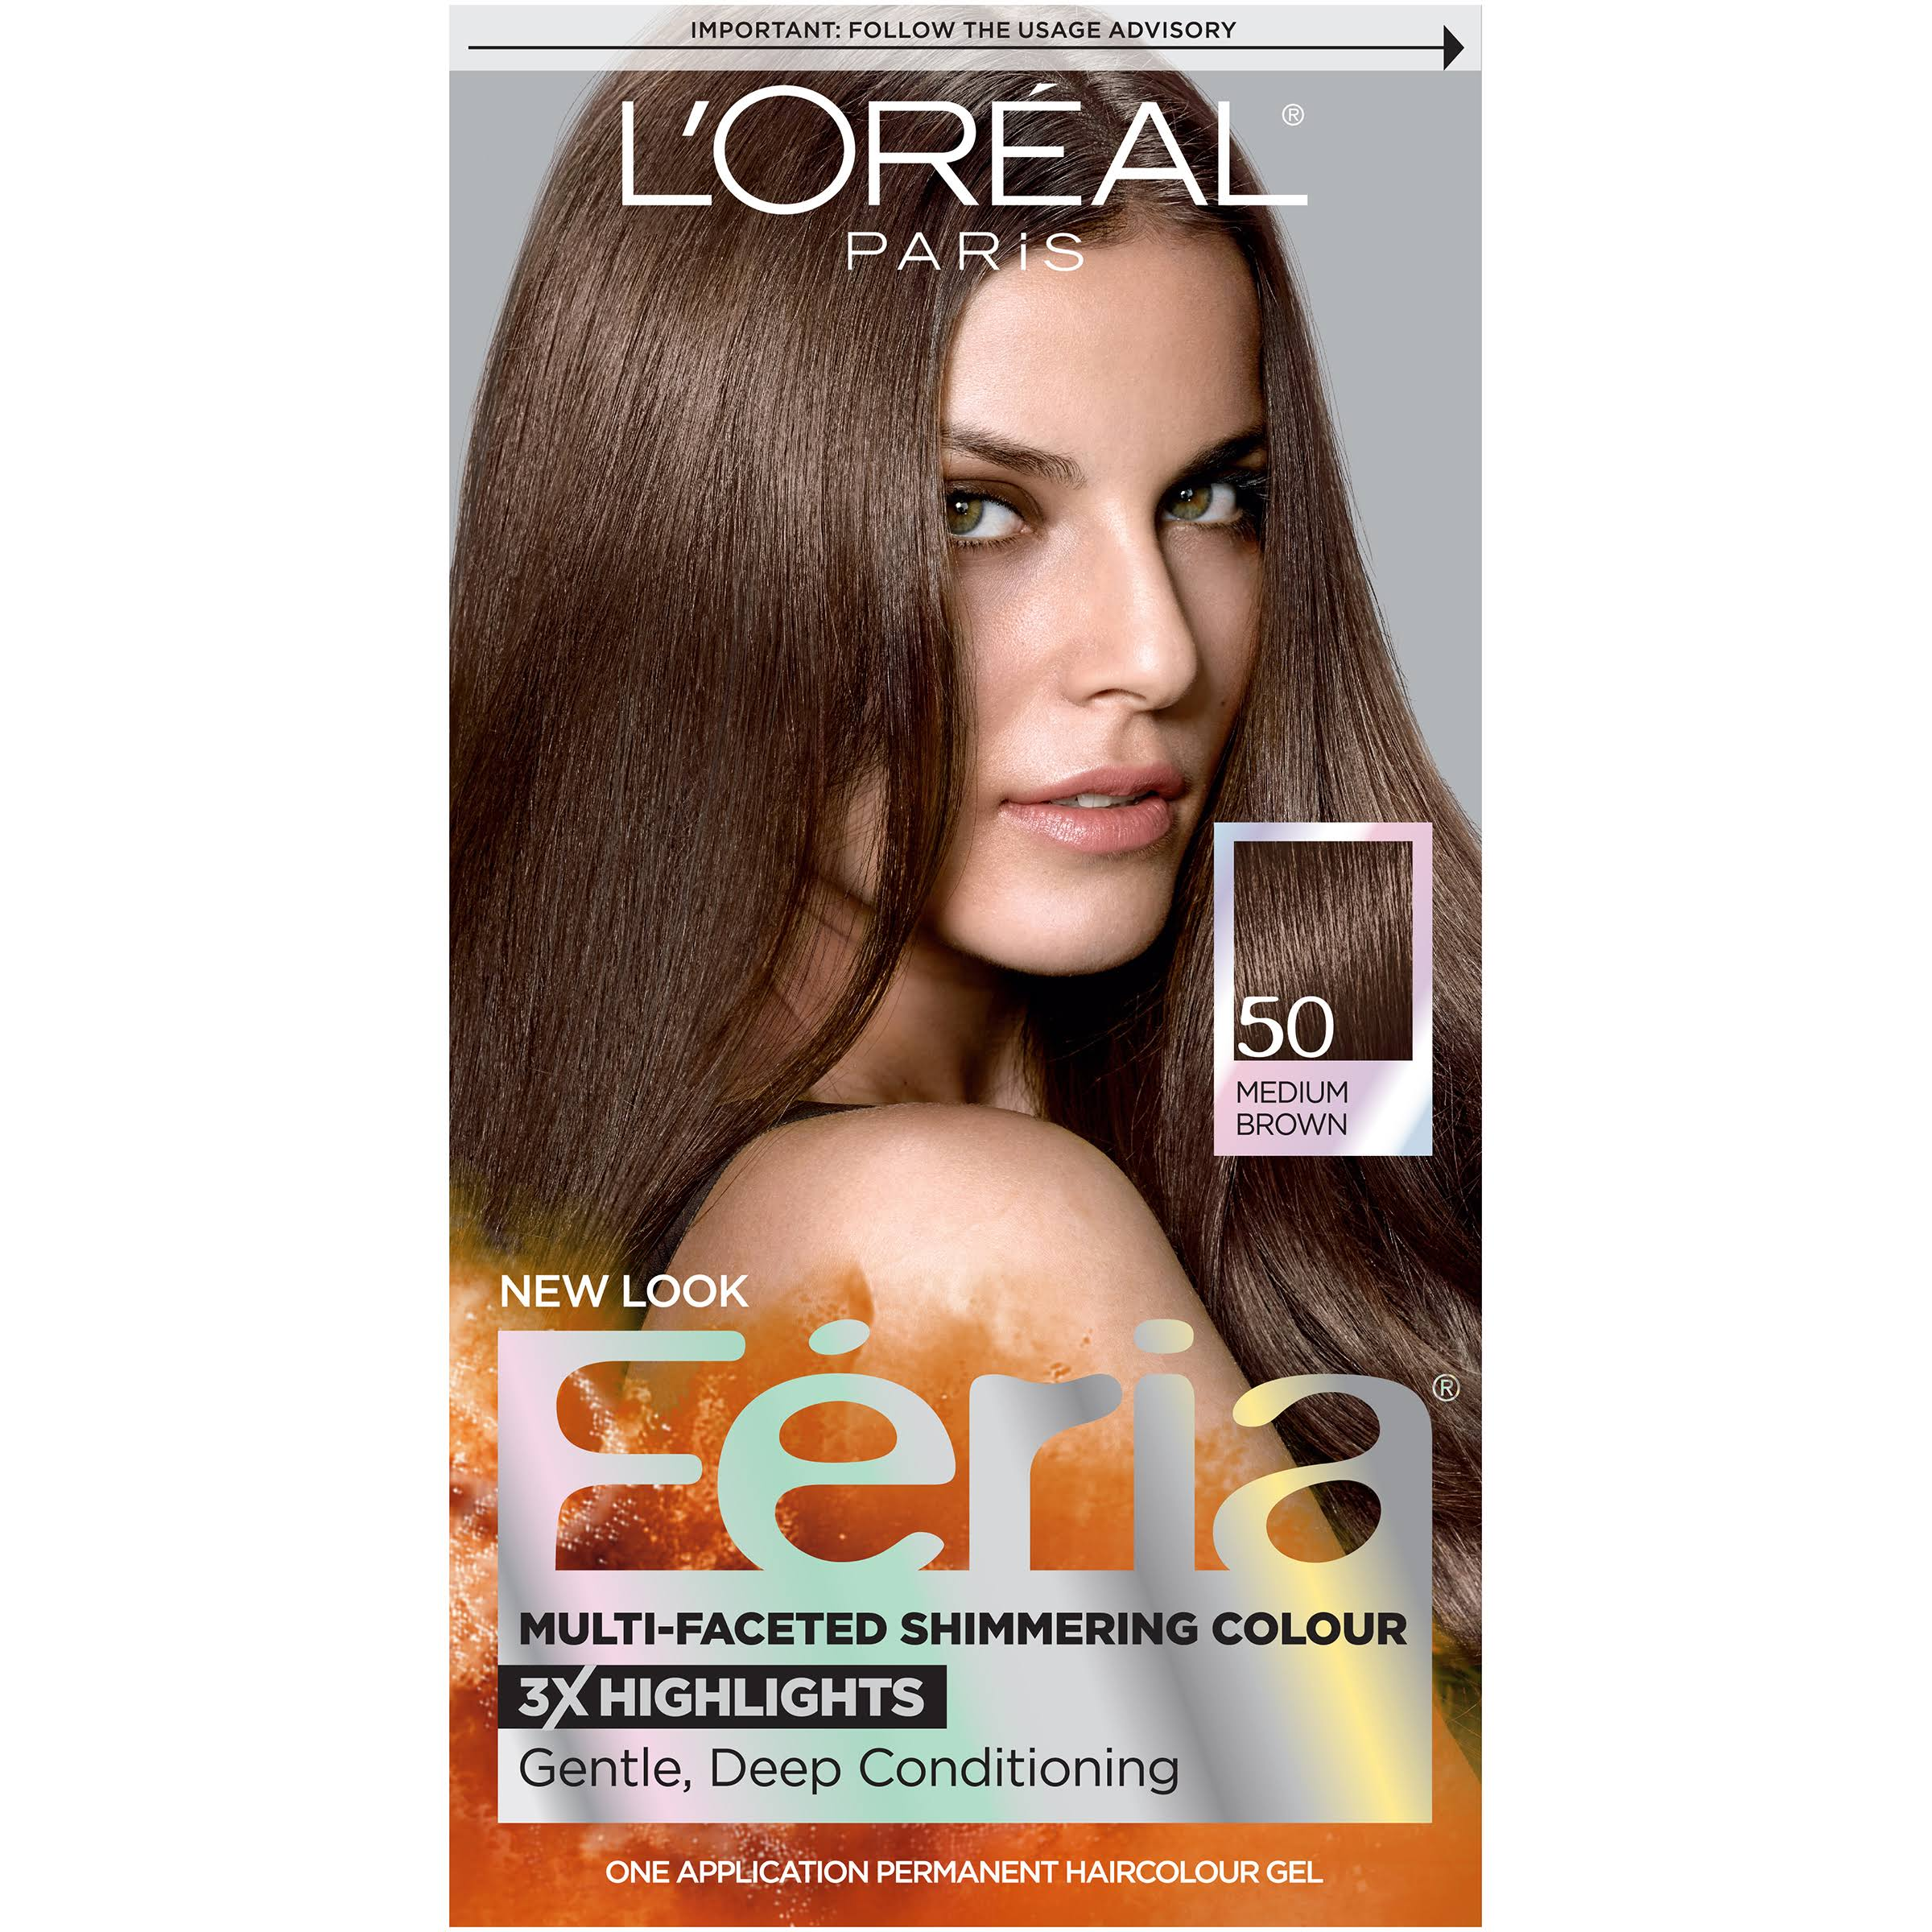 L'oreal Paris Feria Permanent Hair Color Gel - 50 Medium Brown